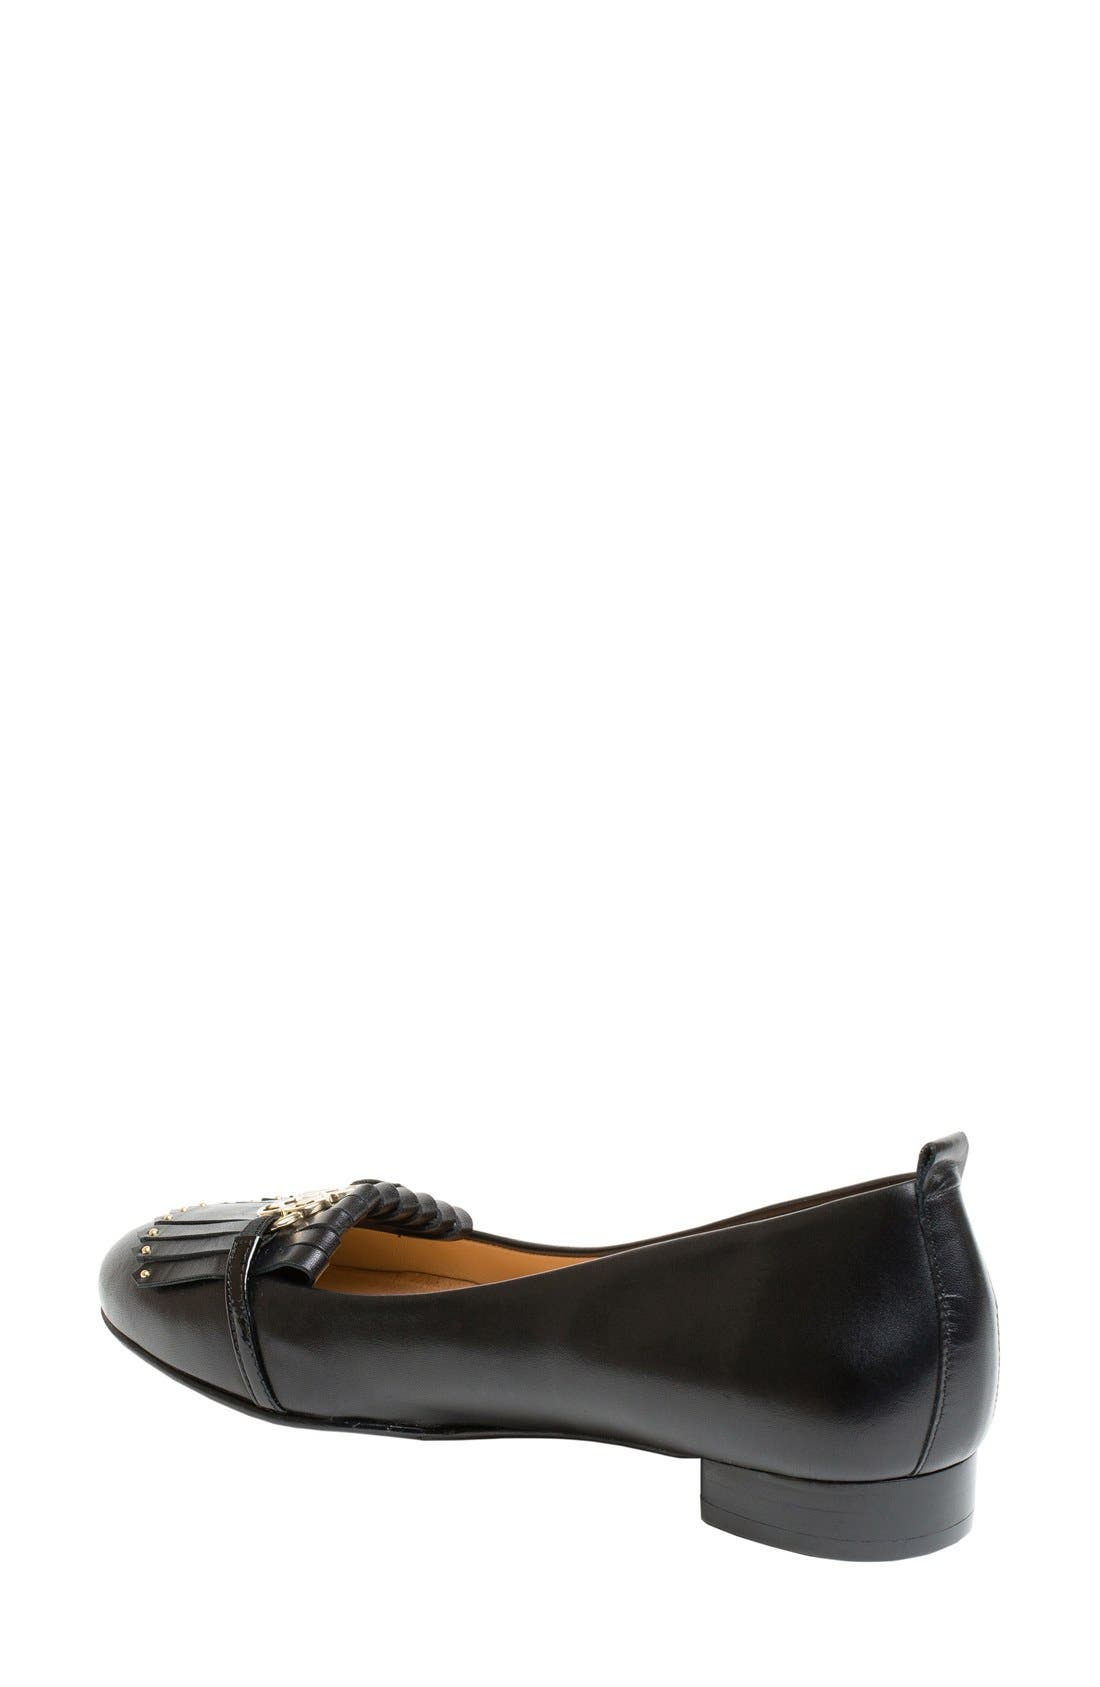 Leona Kiltie Loafer,                             Alternate thumbnail 3, color,                             001